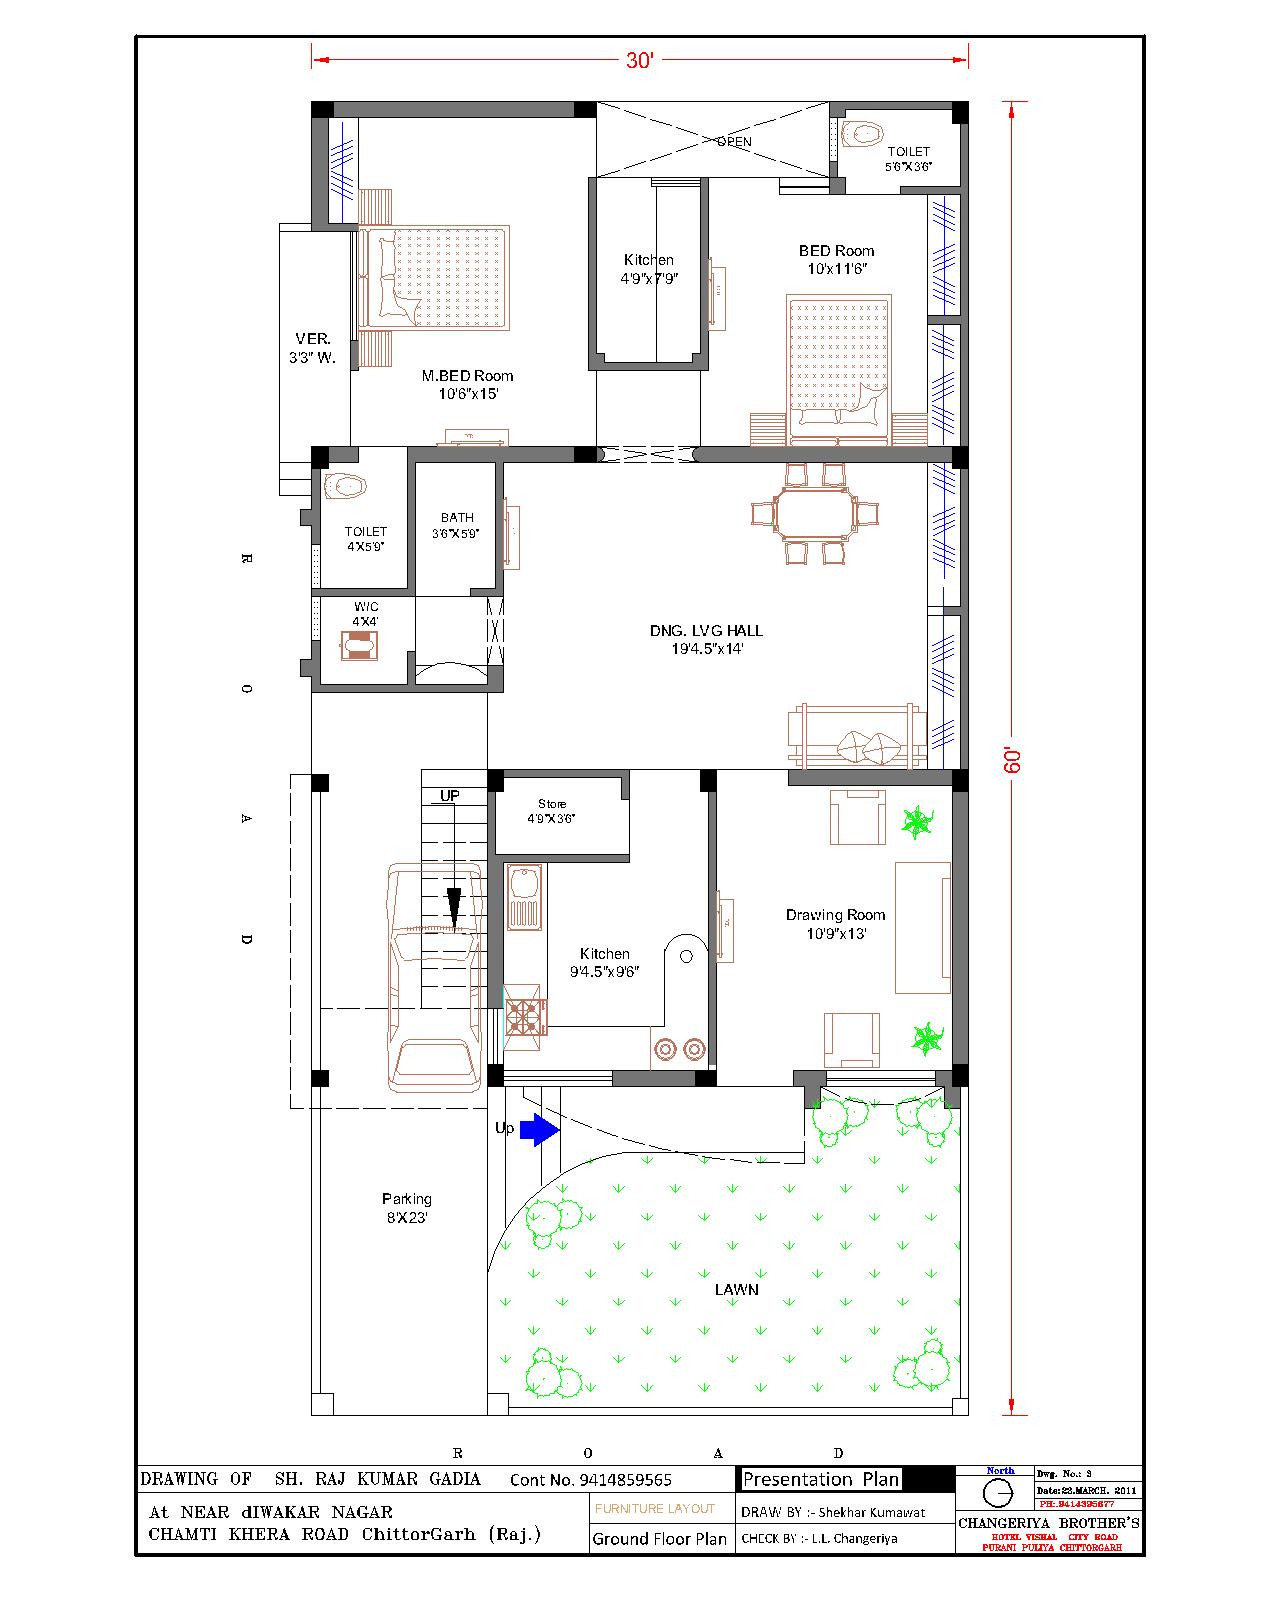 Design Your Own House Plan Online 2020